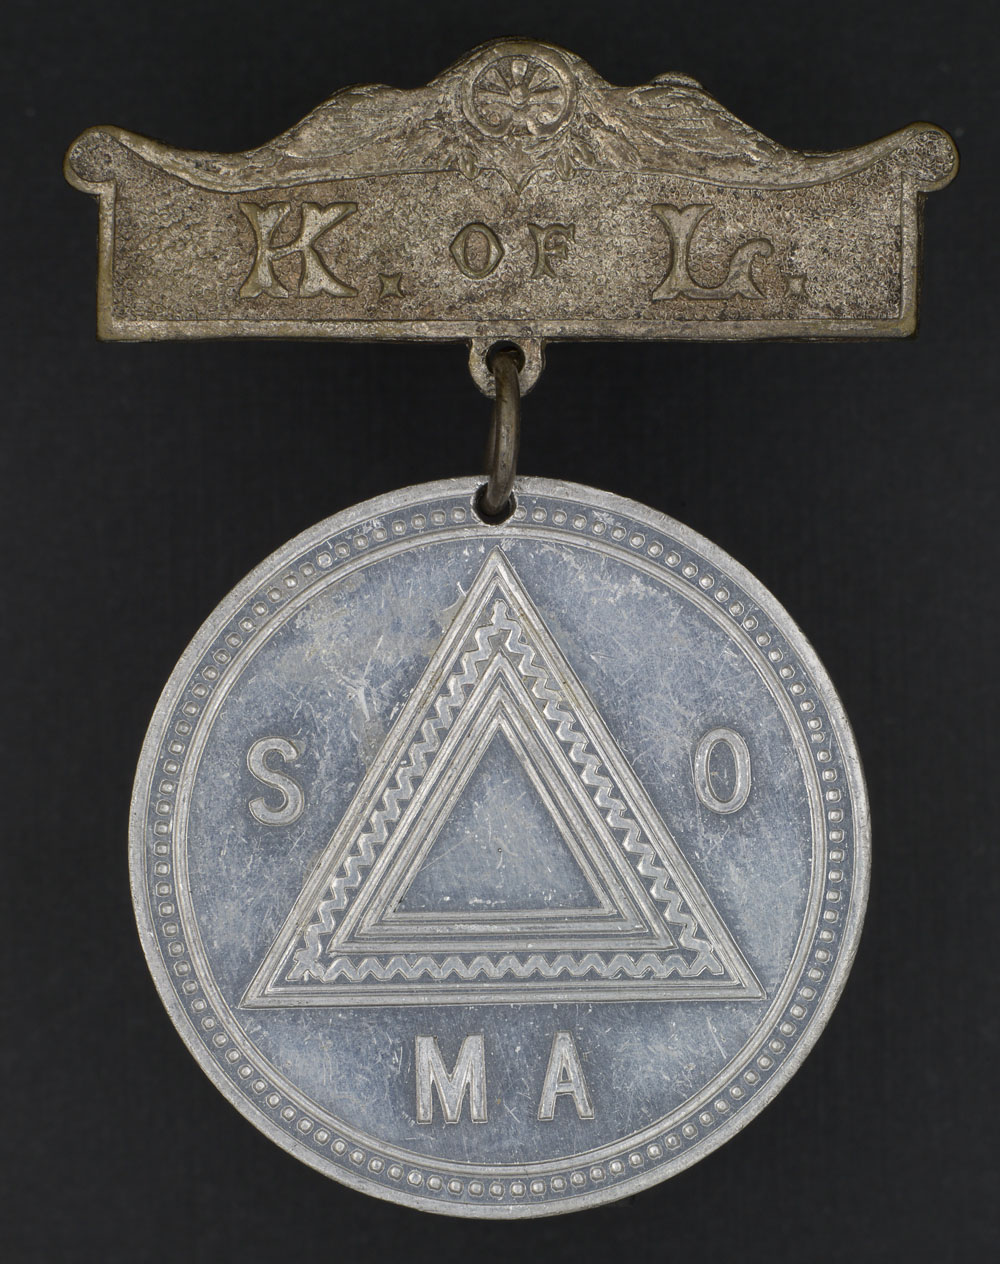 Medal with a Knight of Labor brooch